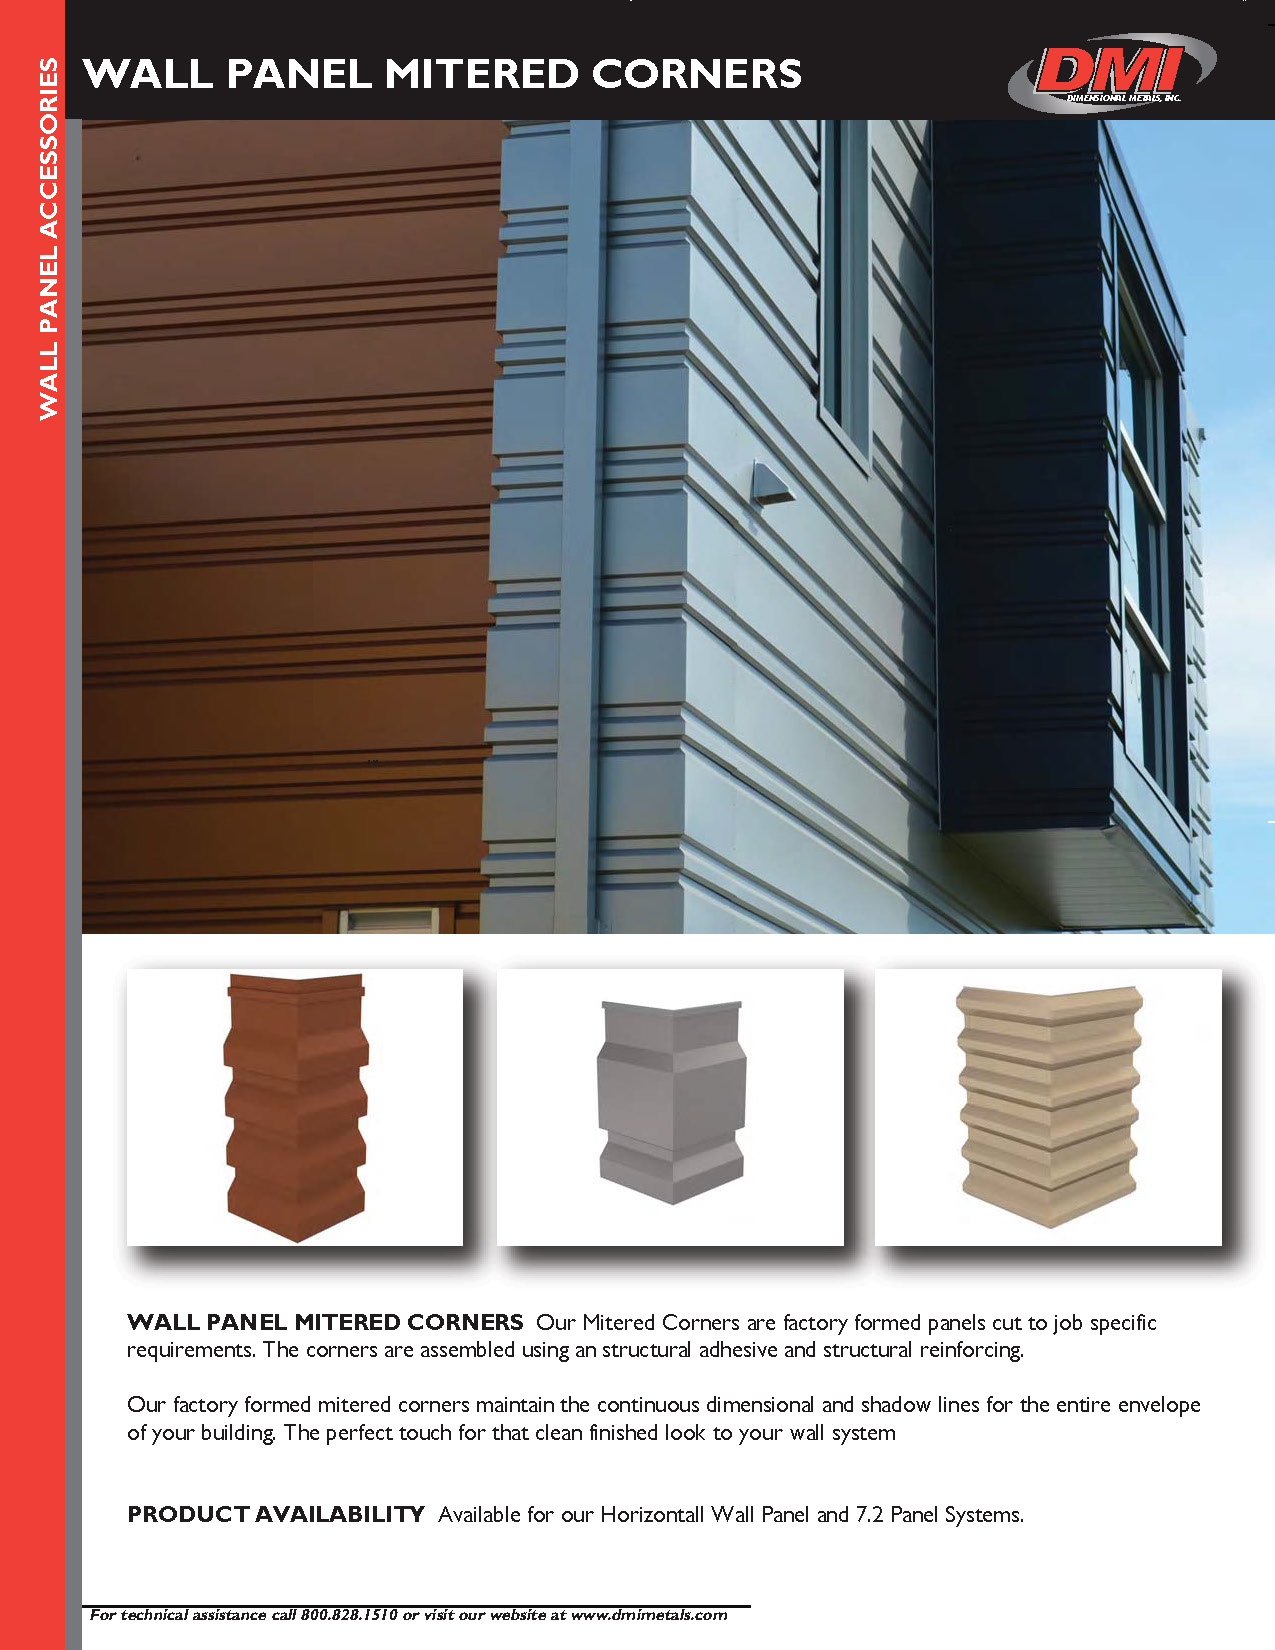 Mitered Corners For Wall Panels Dimensional Metals Inc